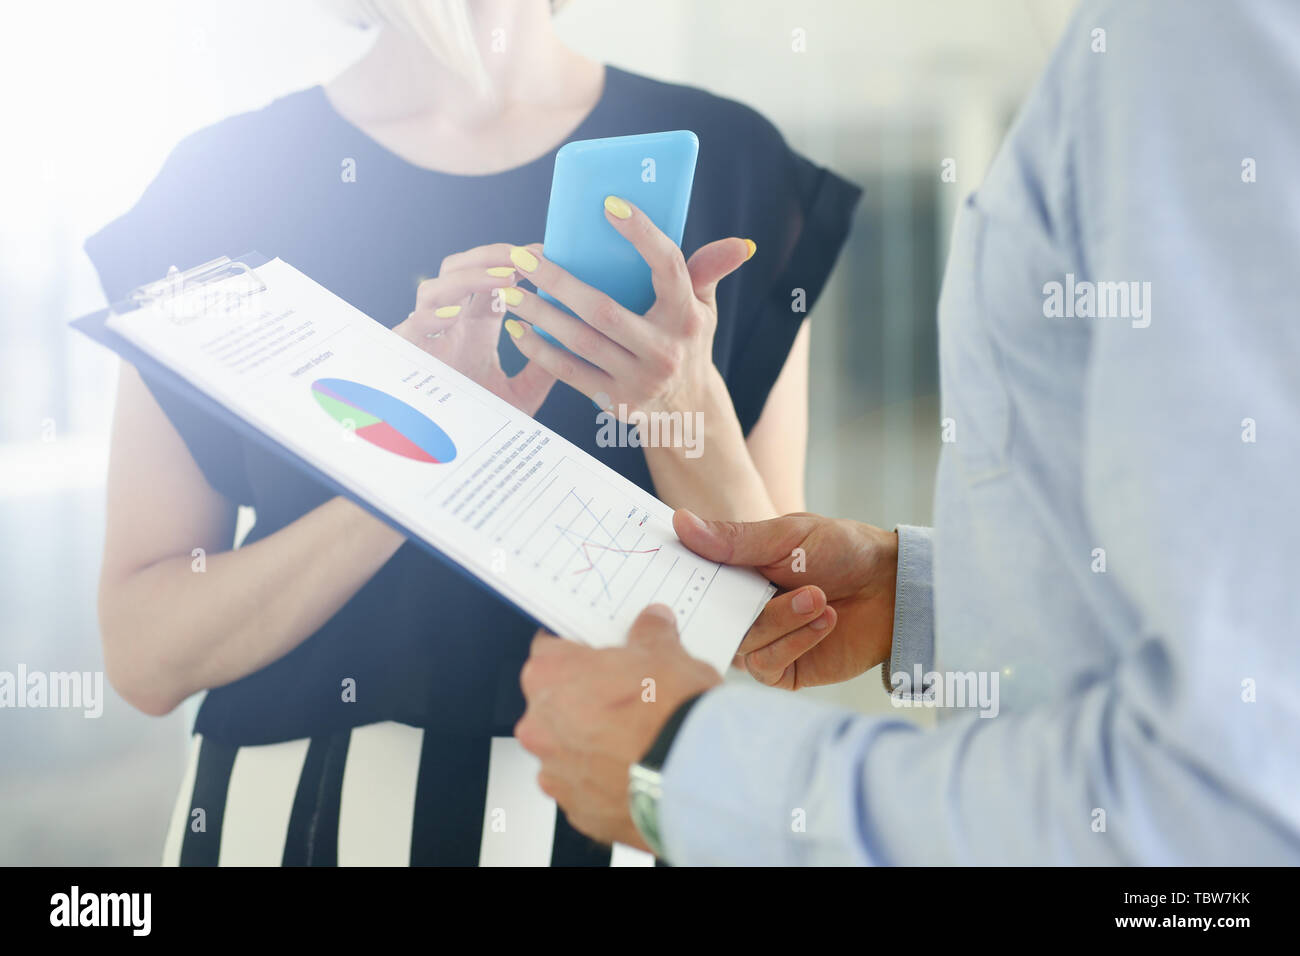 Business people discussing company finances - Stock Image